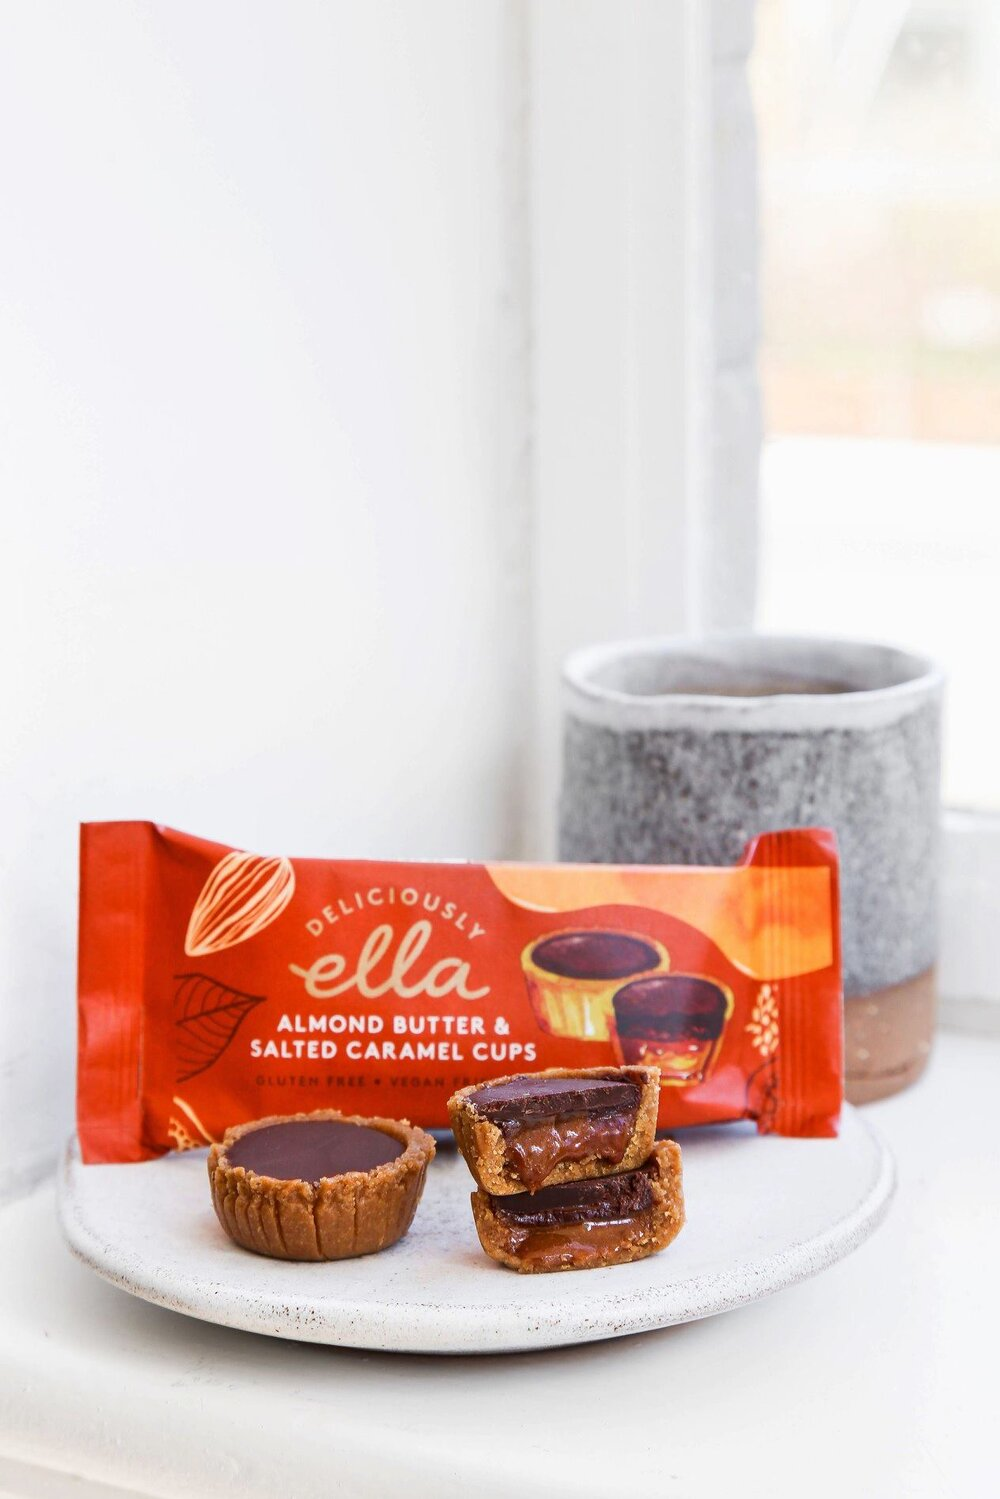 Deliciously Ella Salted Caramel Cups